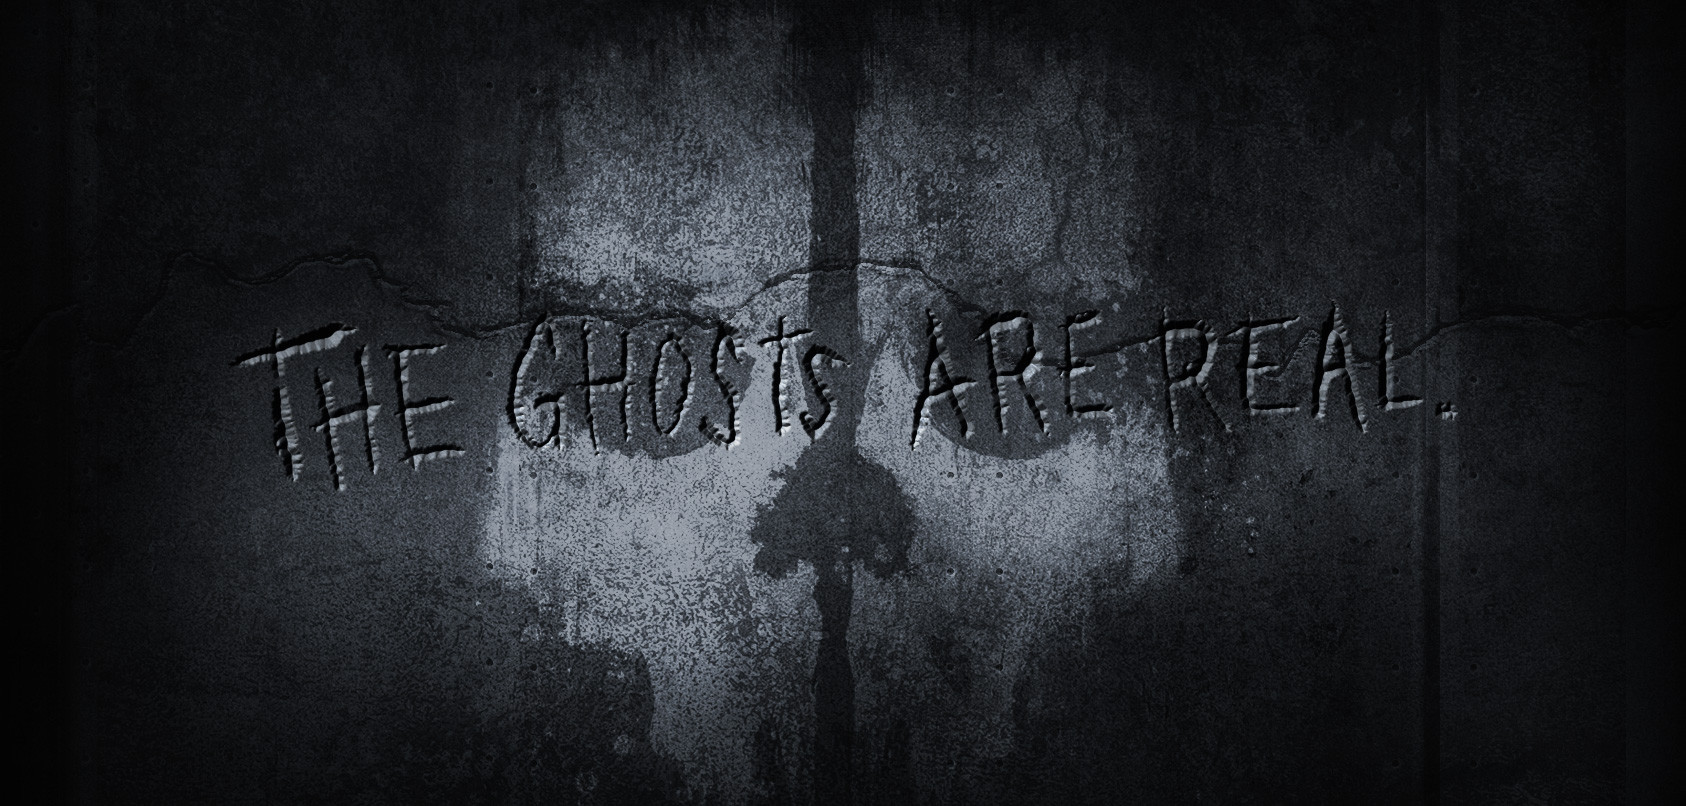 download download call of duty ghosts background in high resolution 1686x806